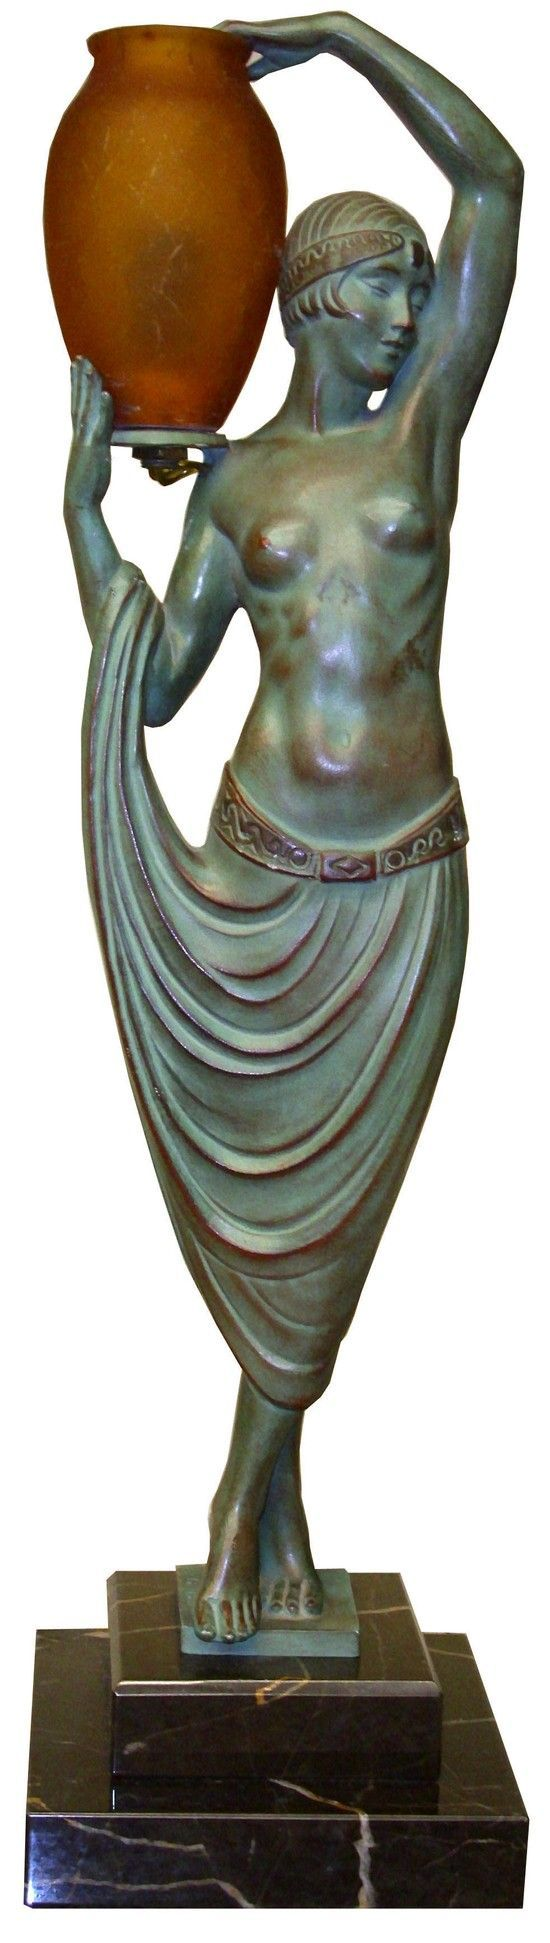 French Art Deco Figural Statue by Pierre LeFaguays, 1920's.